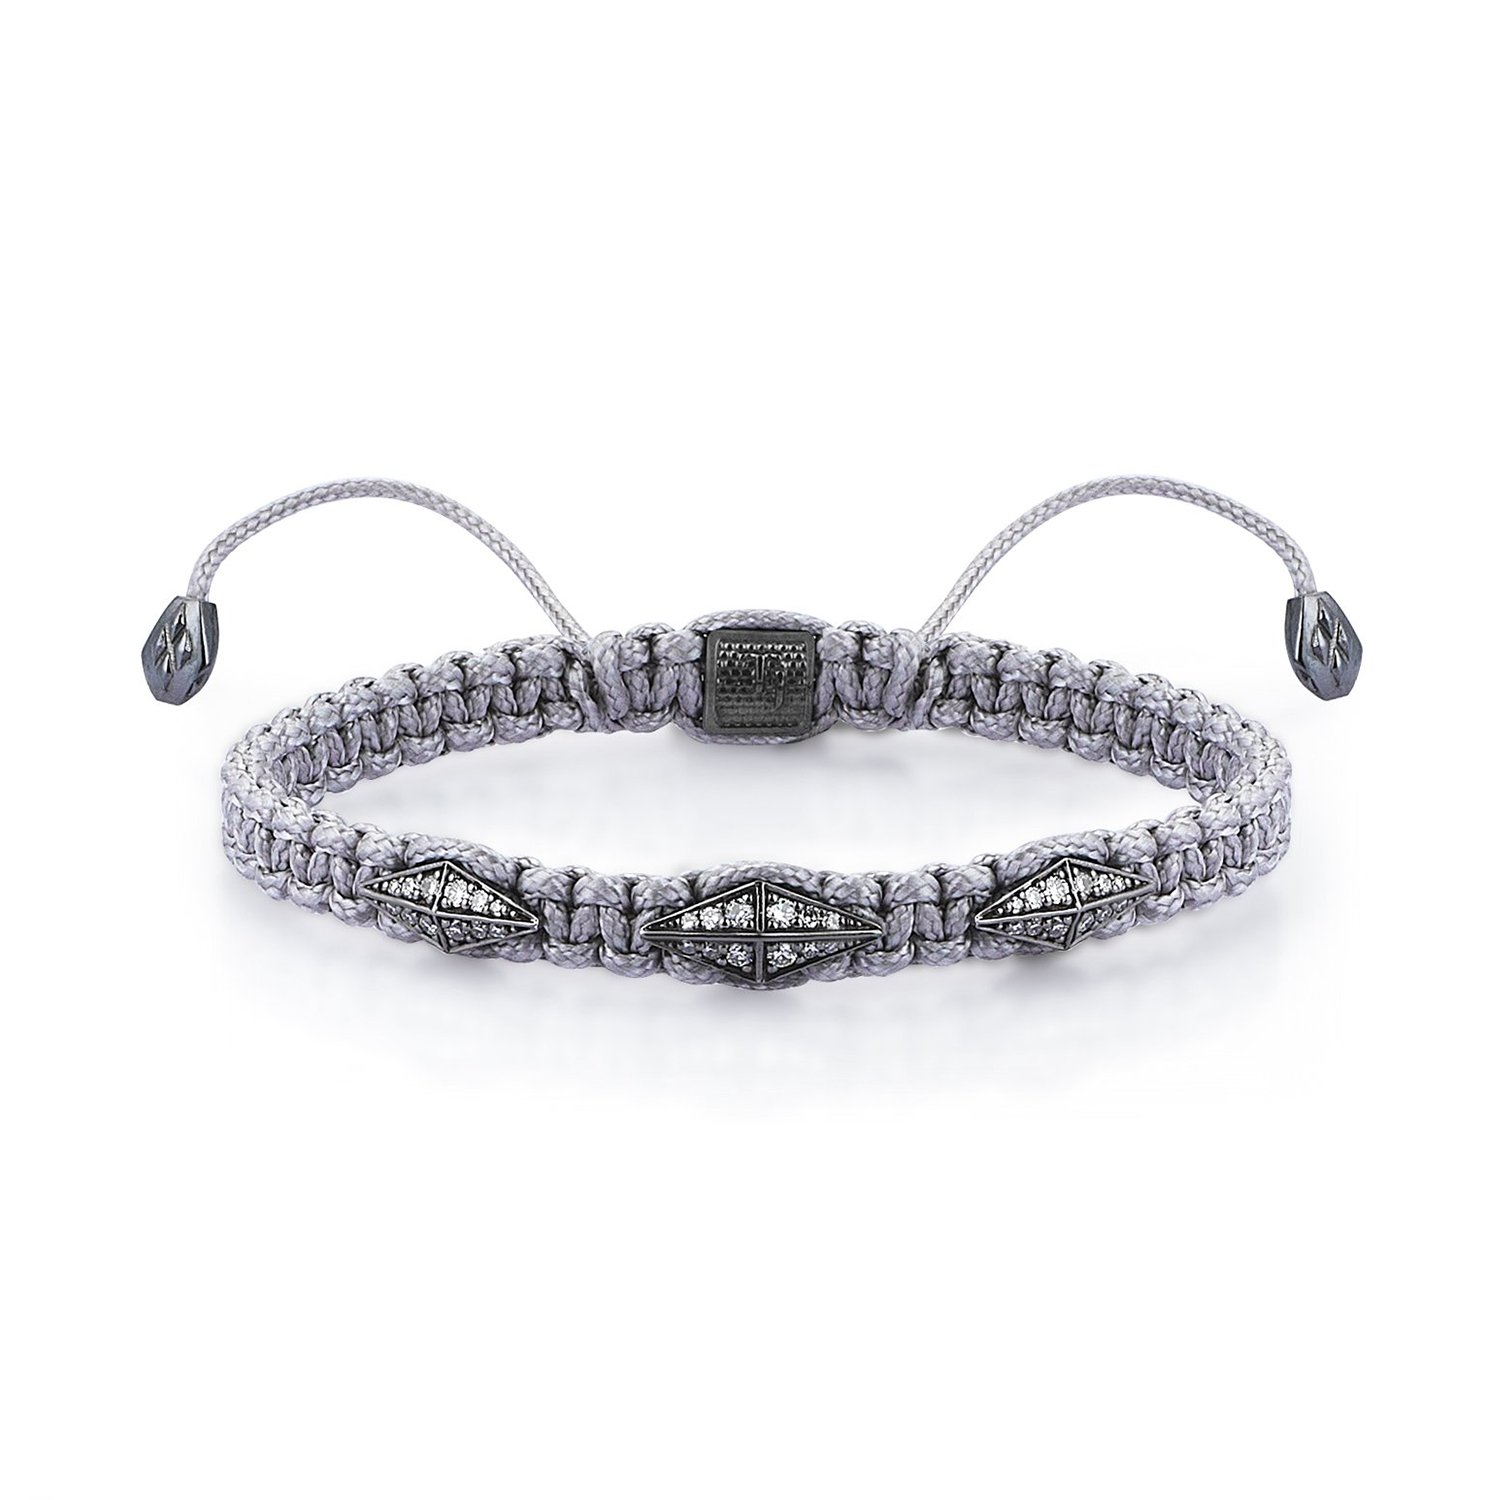 Gray Macrame Iconic Diamondback (3) Silver Bracelet in Black Rhodium with Full Diamonds